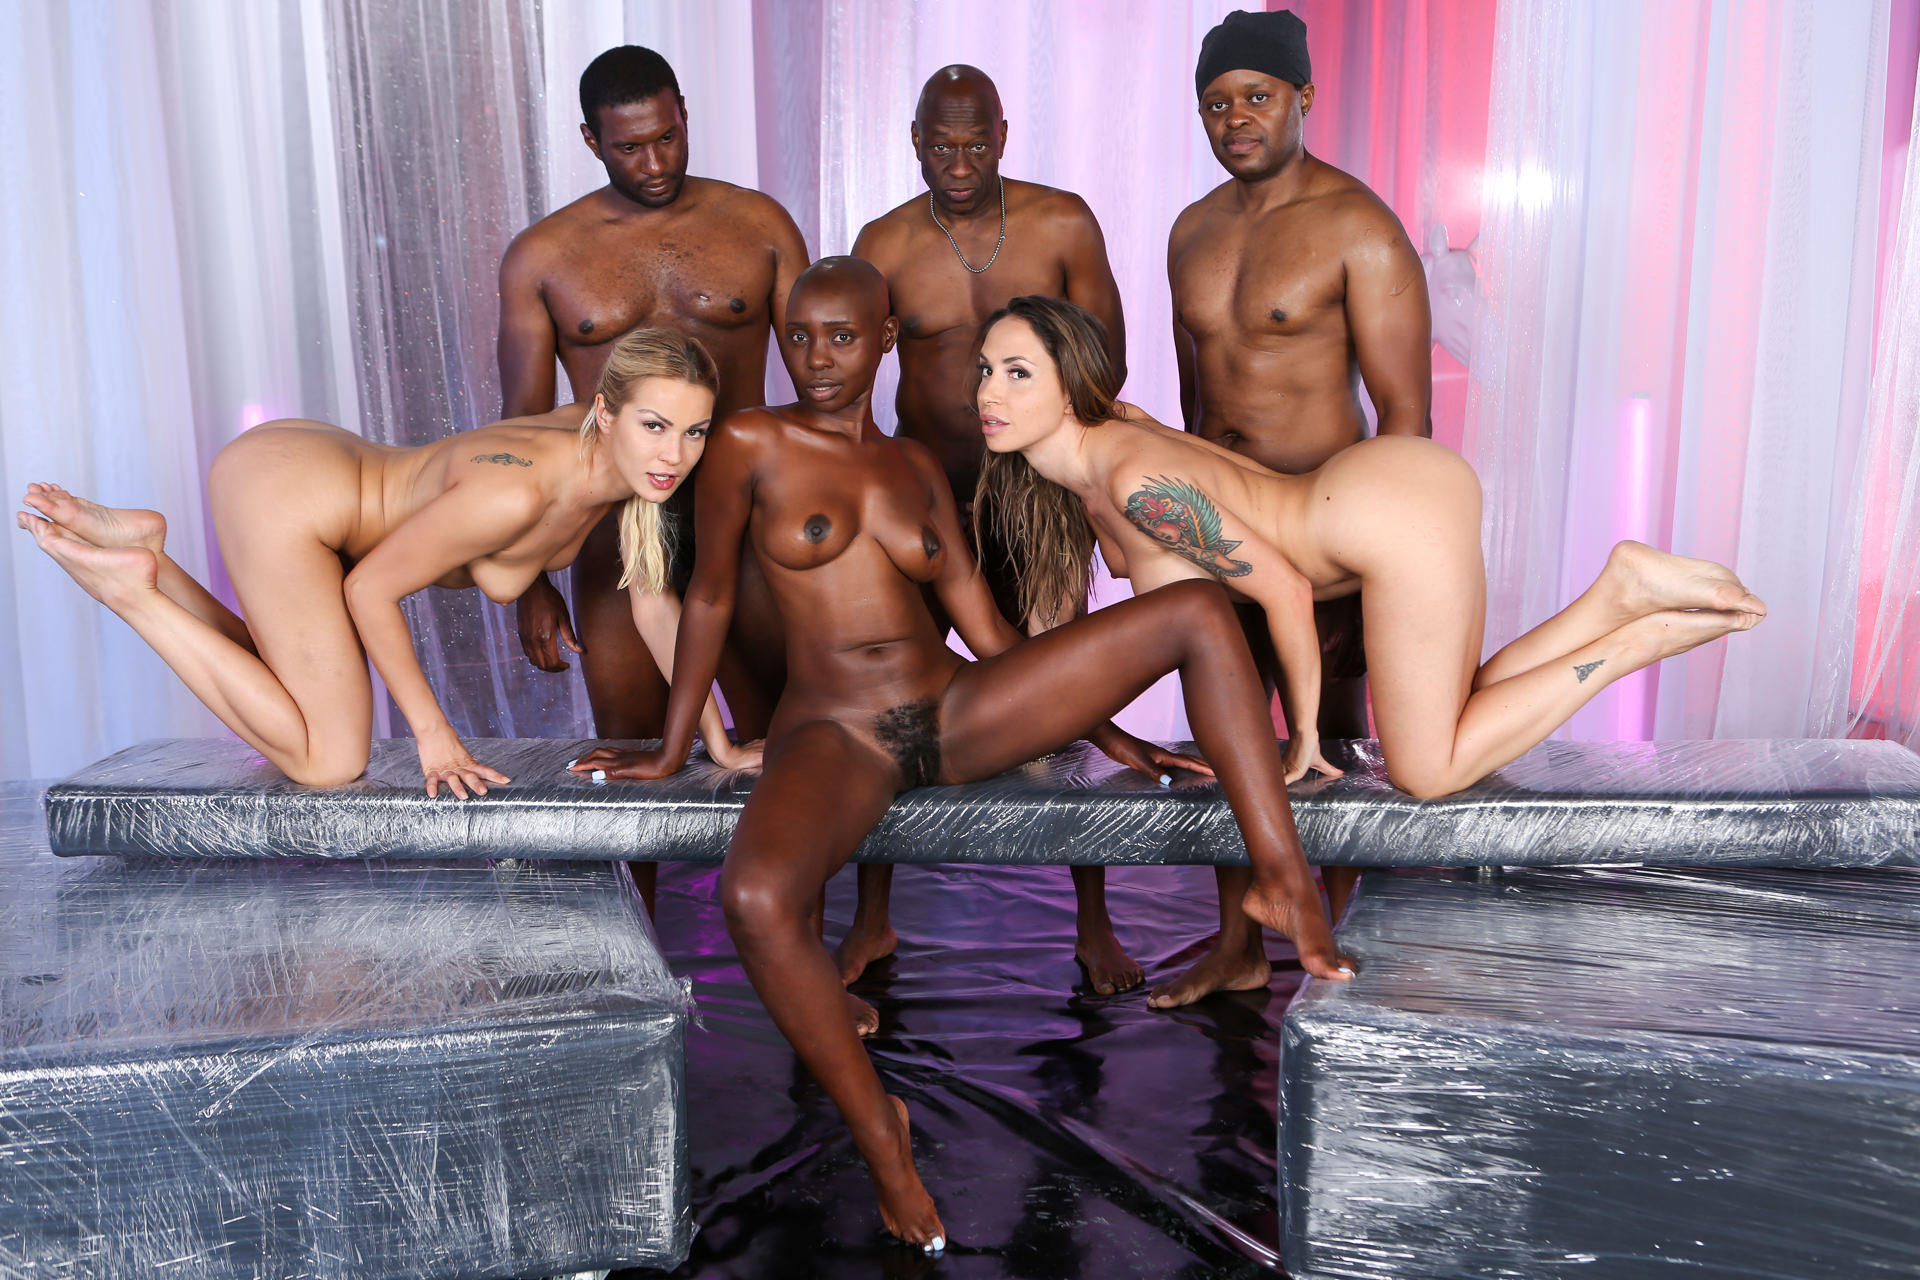 Download EvilAngel.com - My Name Is Zaawaadi, Scene 04